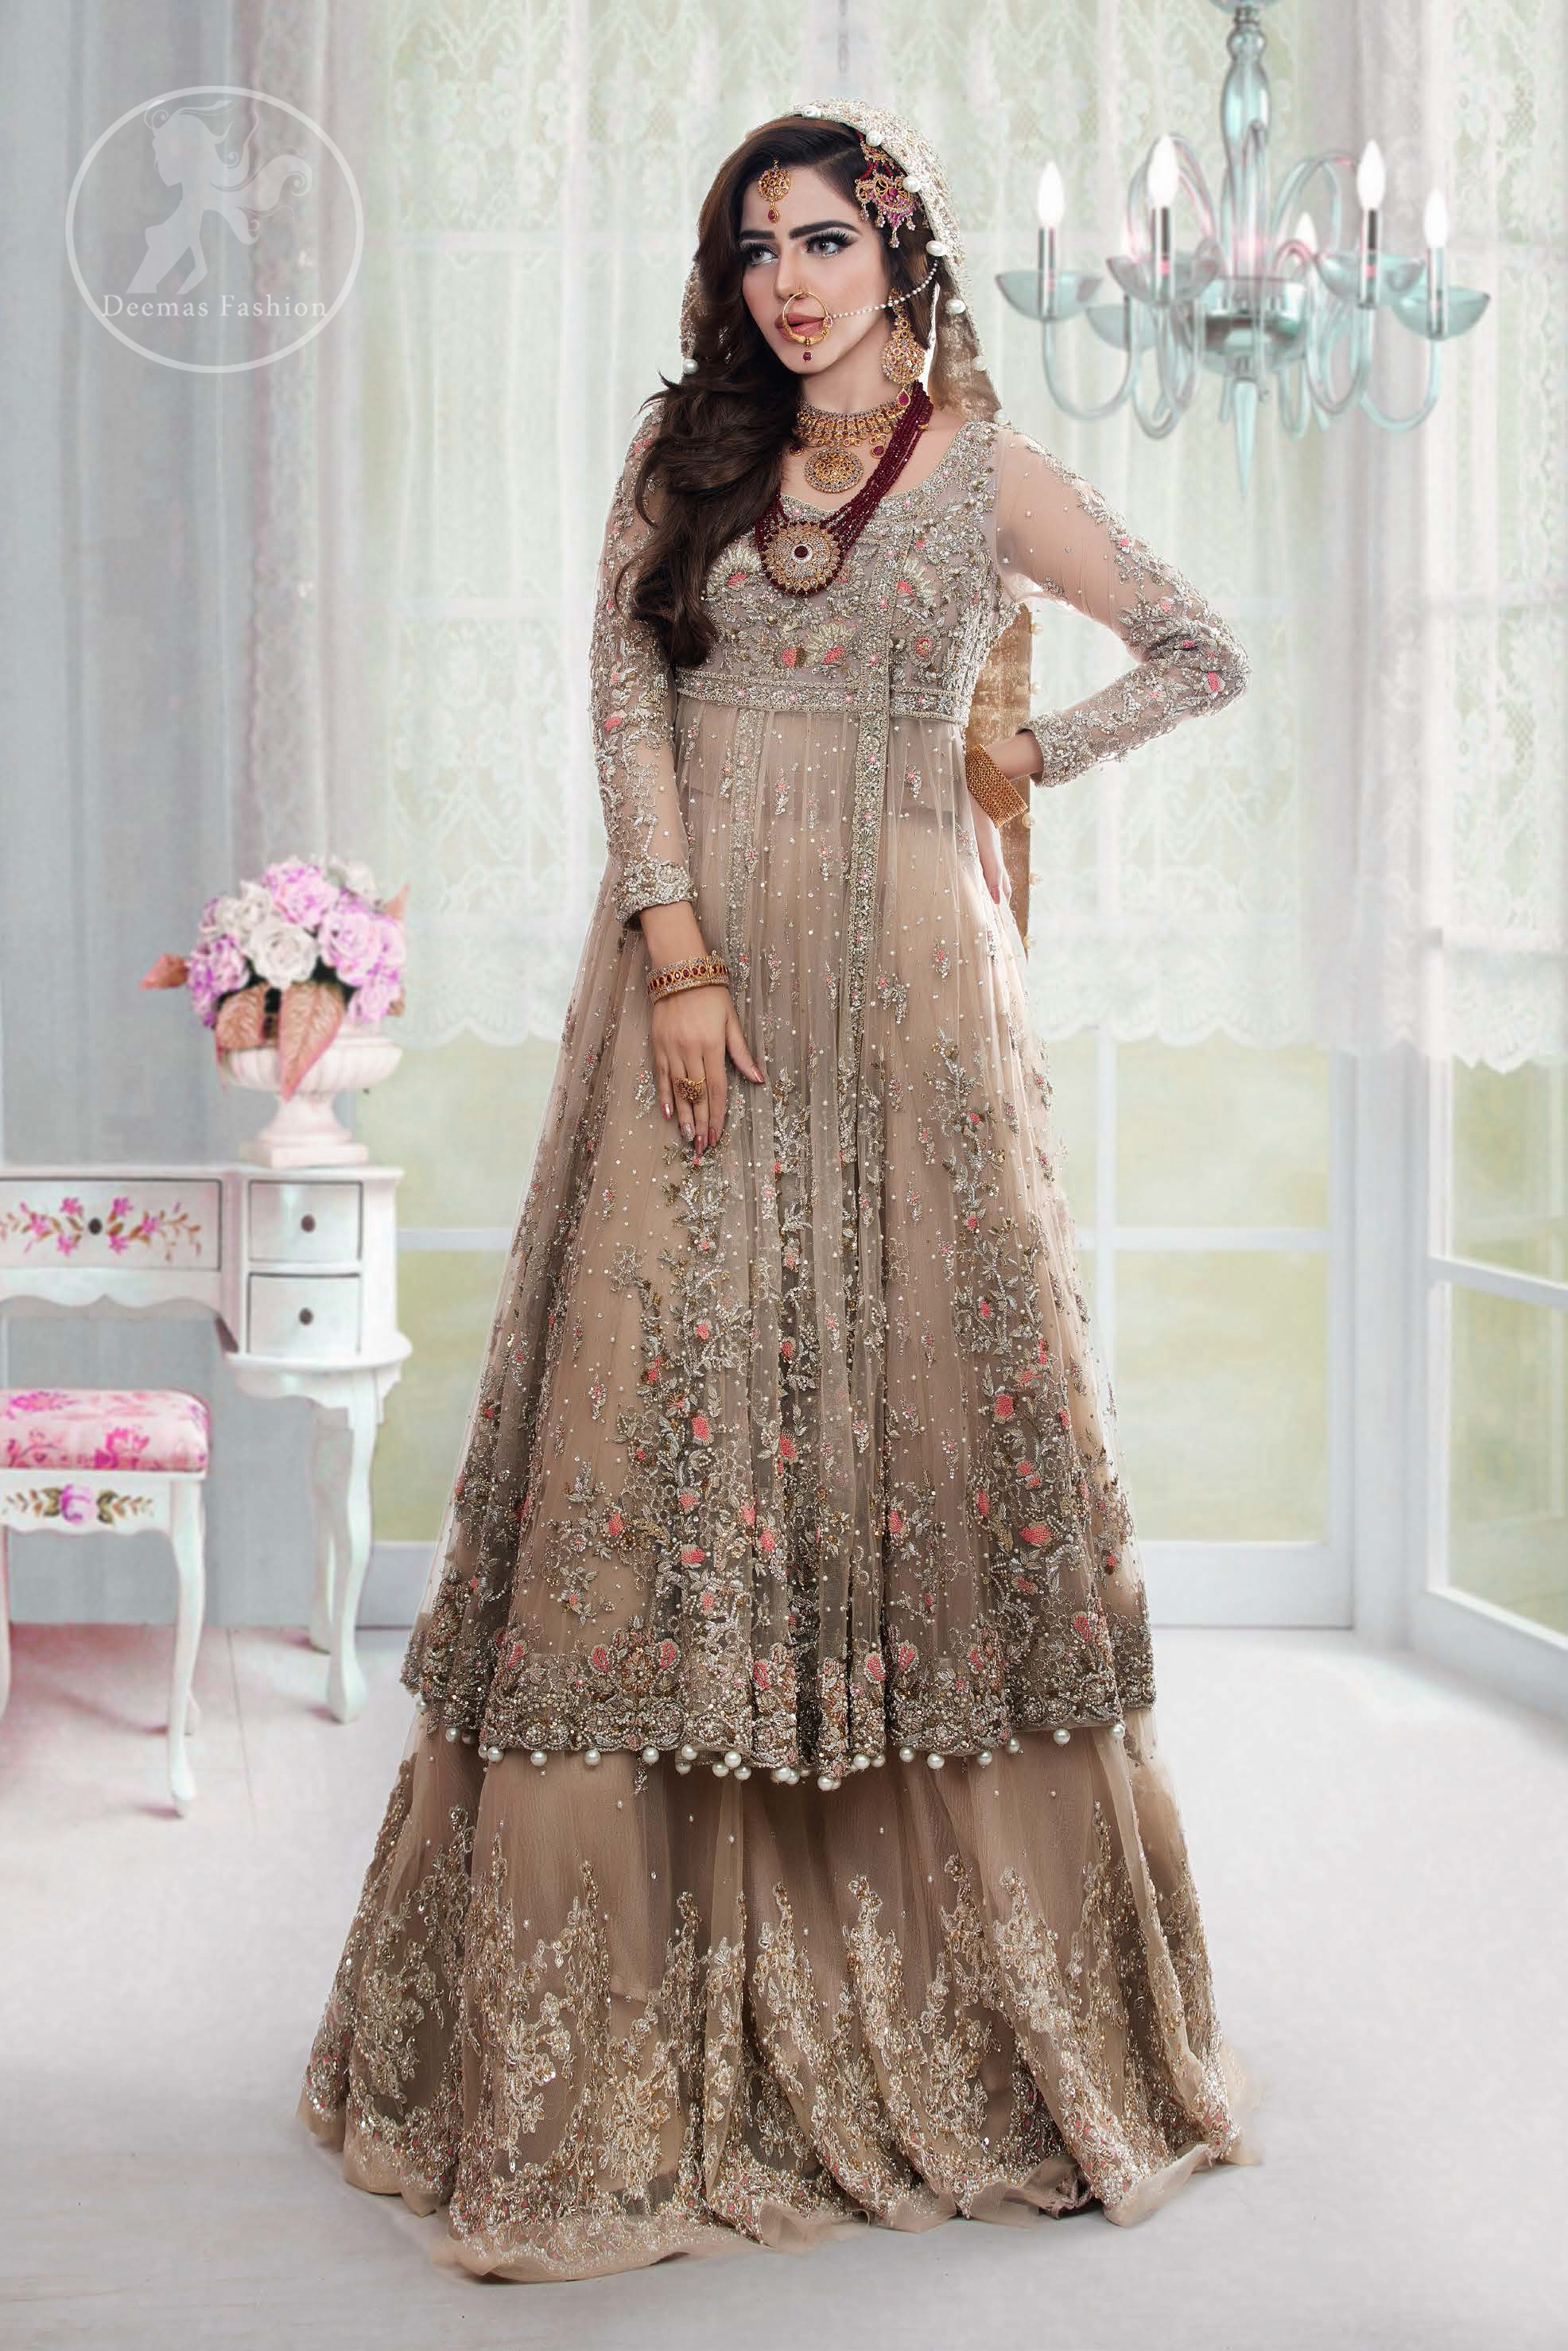 This outfit is meticulously featuring antique shades of kora, dabka, tilla, sequins and pearls.